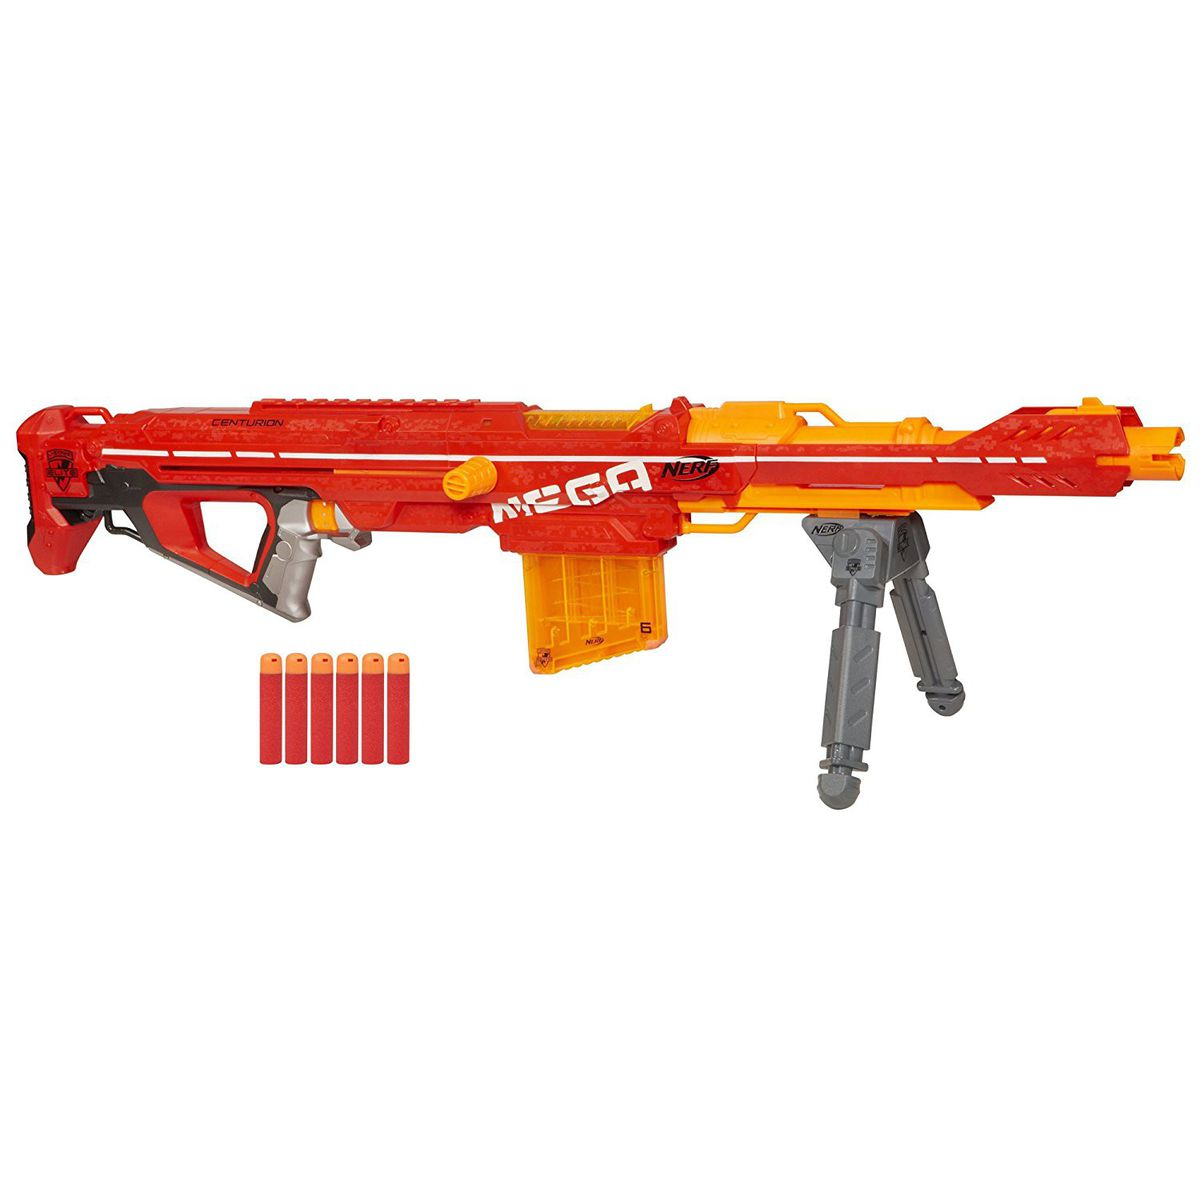 Nerf N-Strike Gun Mega Centurion Boys Toy - Parallel Import. Loading zoom